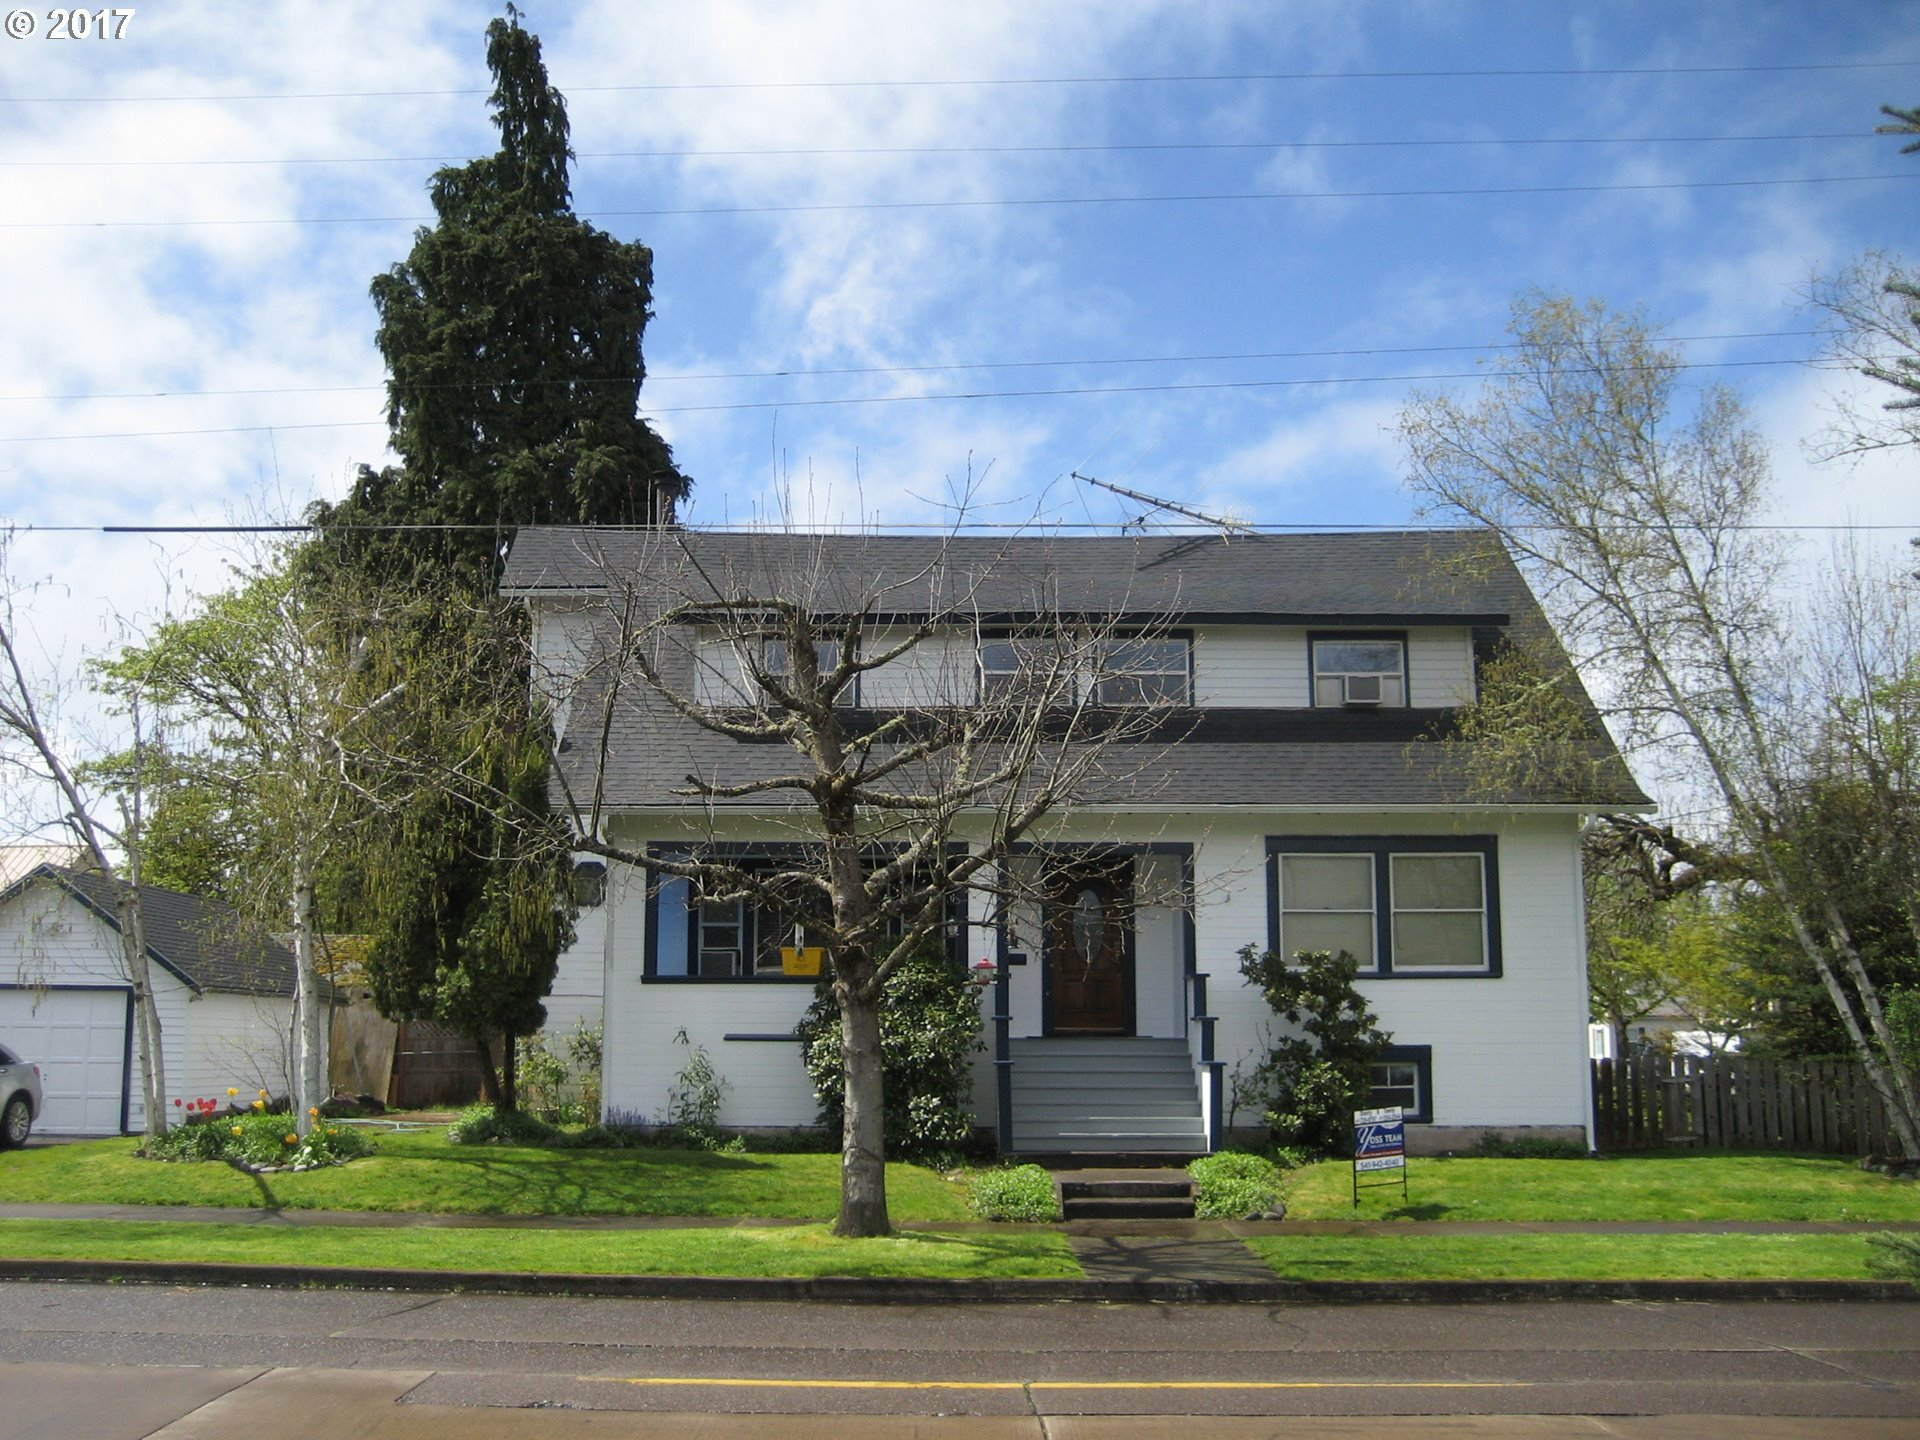 407 S 5TH ST, Cottage Grove, OR 97424